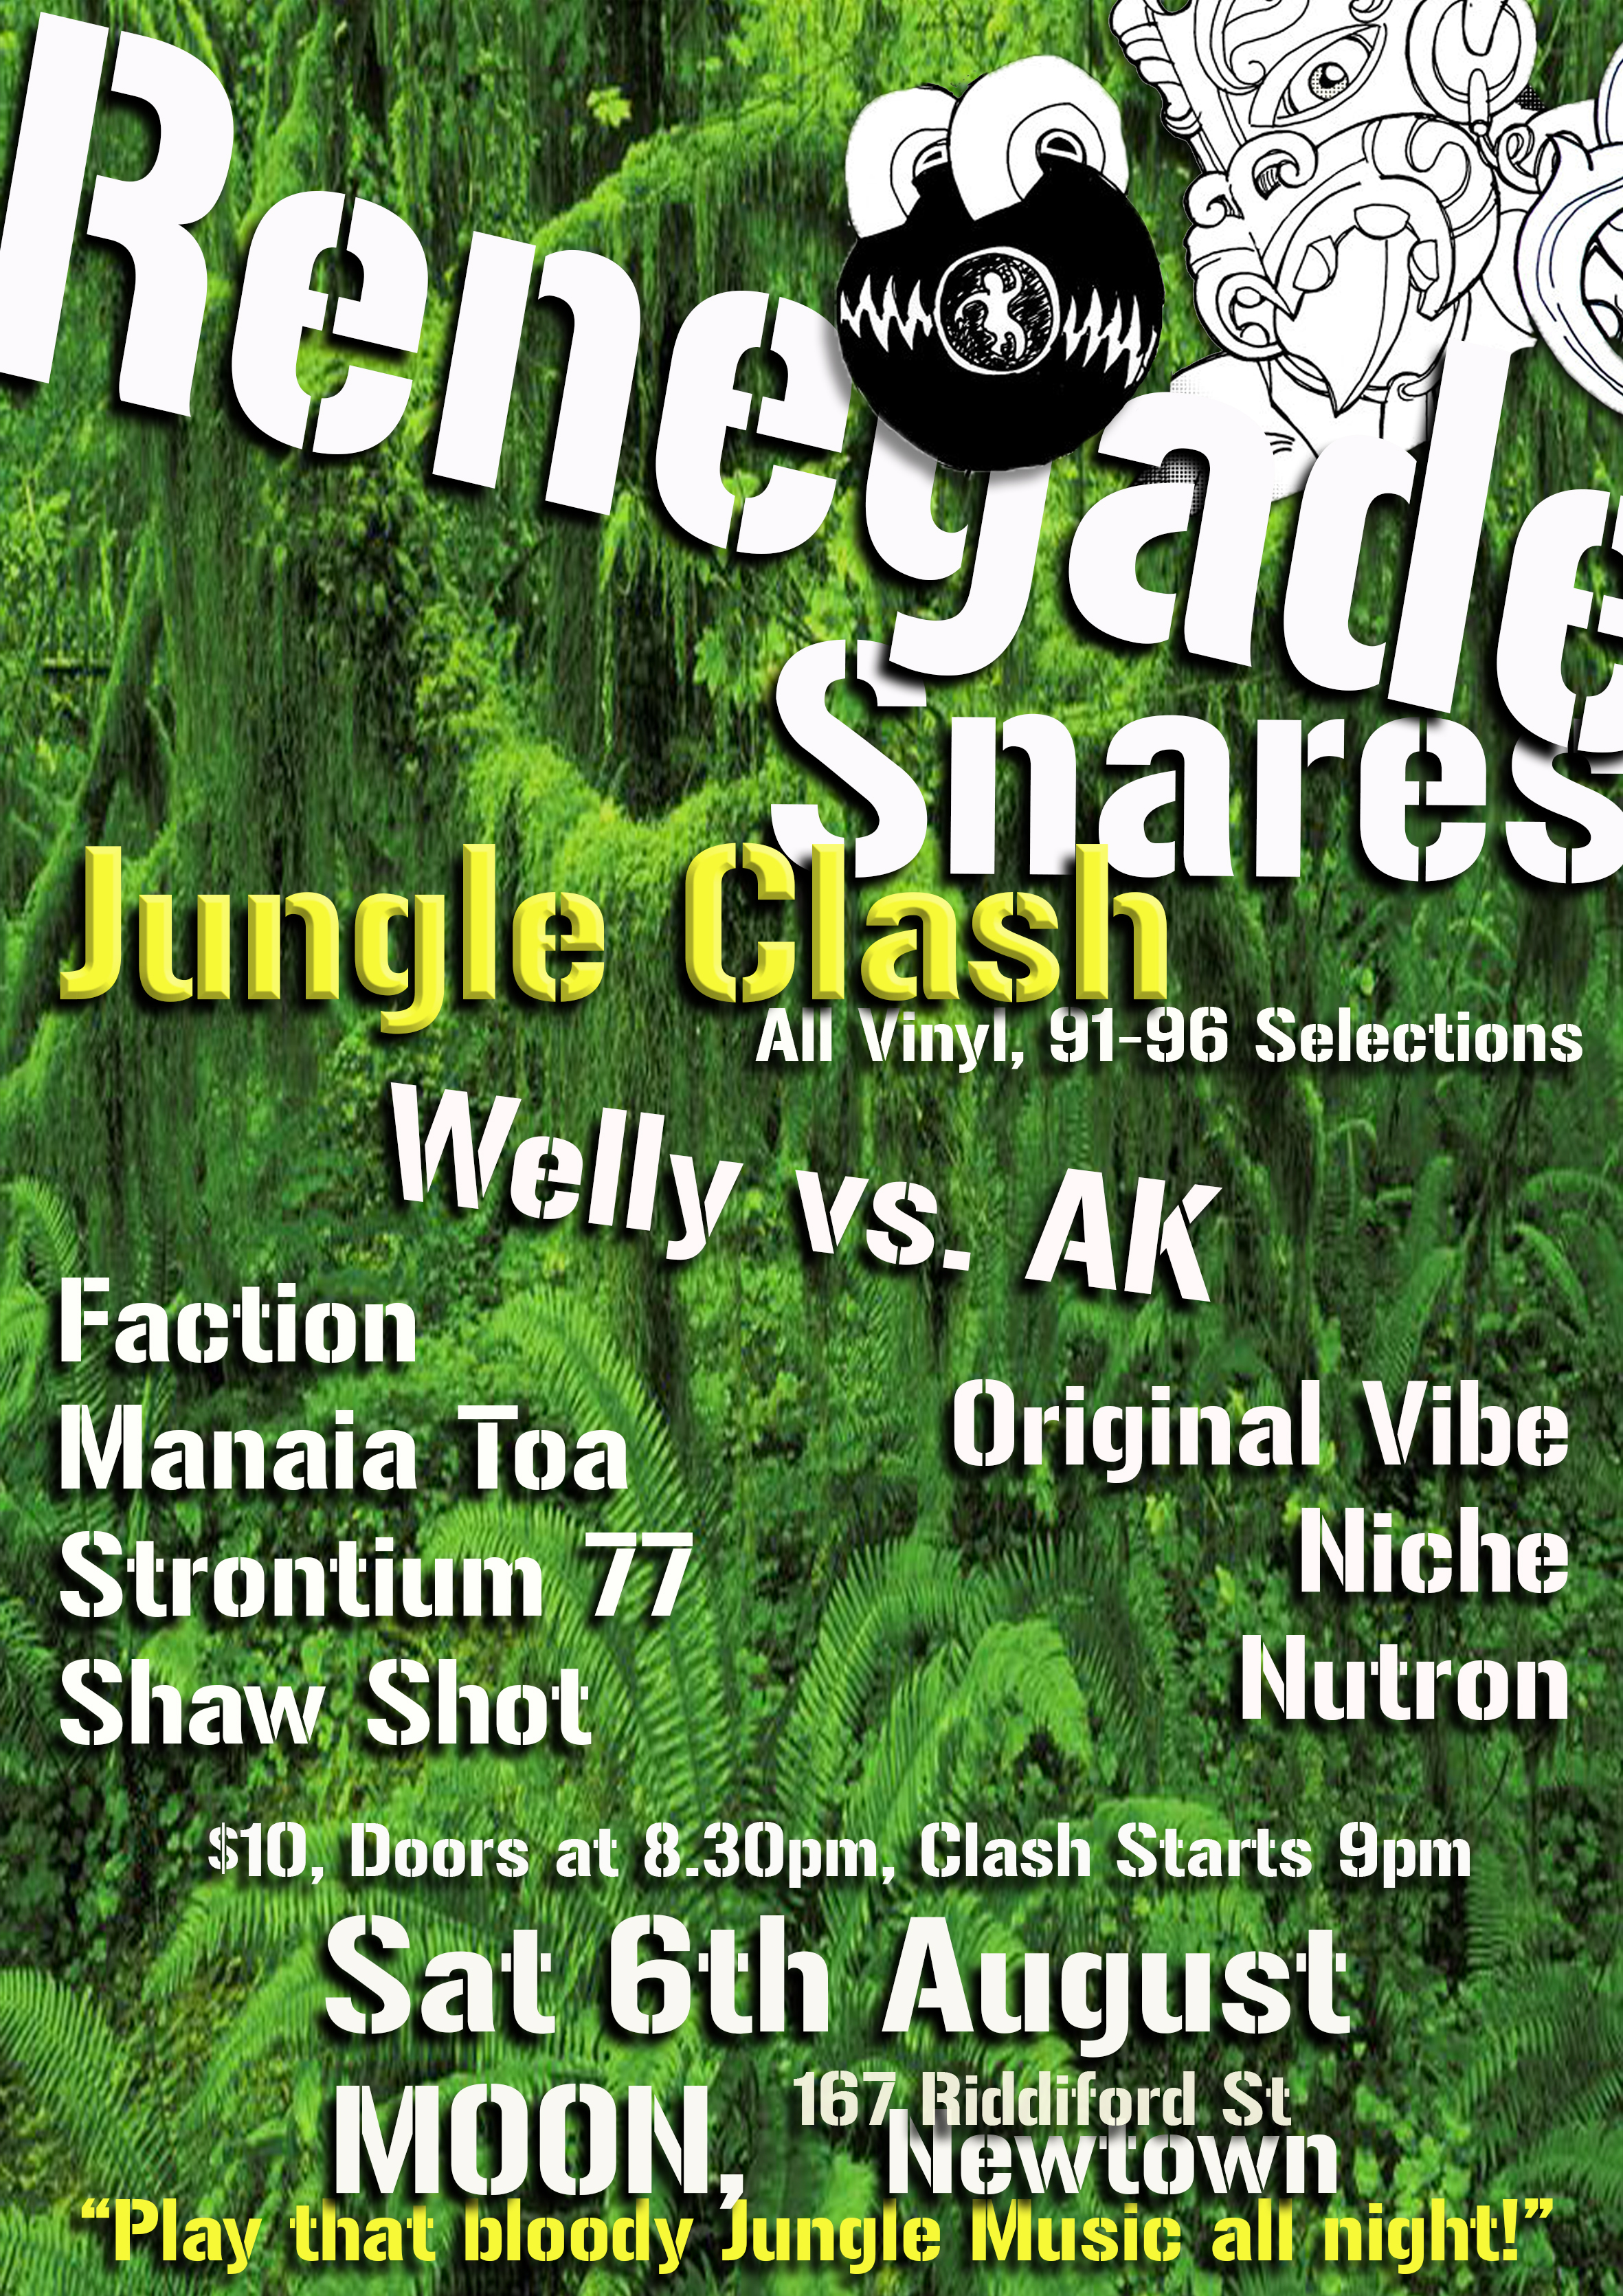 Renegade Snares Jungle Sound Clash: AK vs Welly Saturday Aug 6, MOON, Wellington